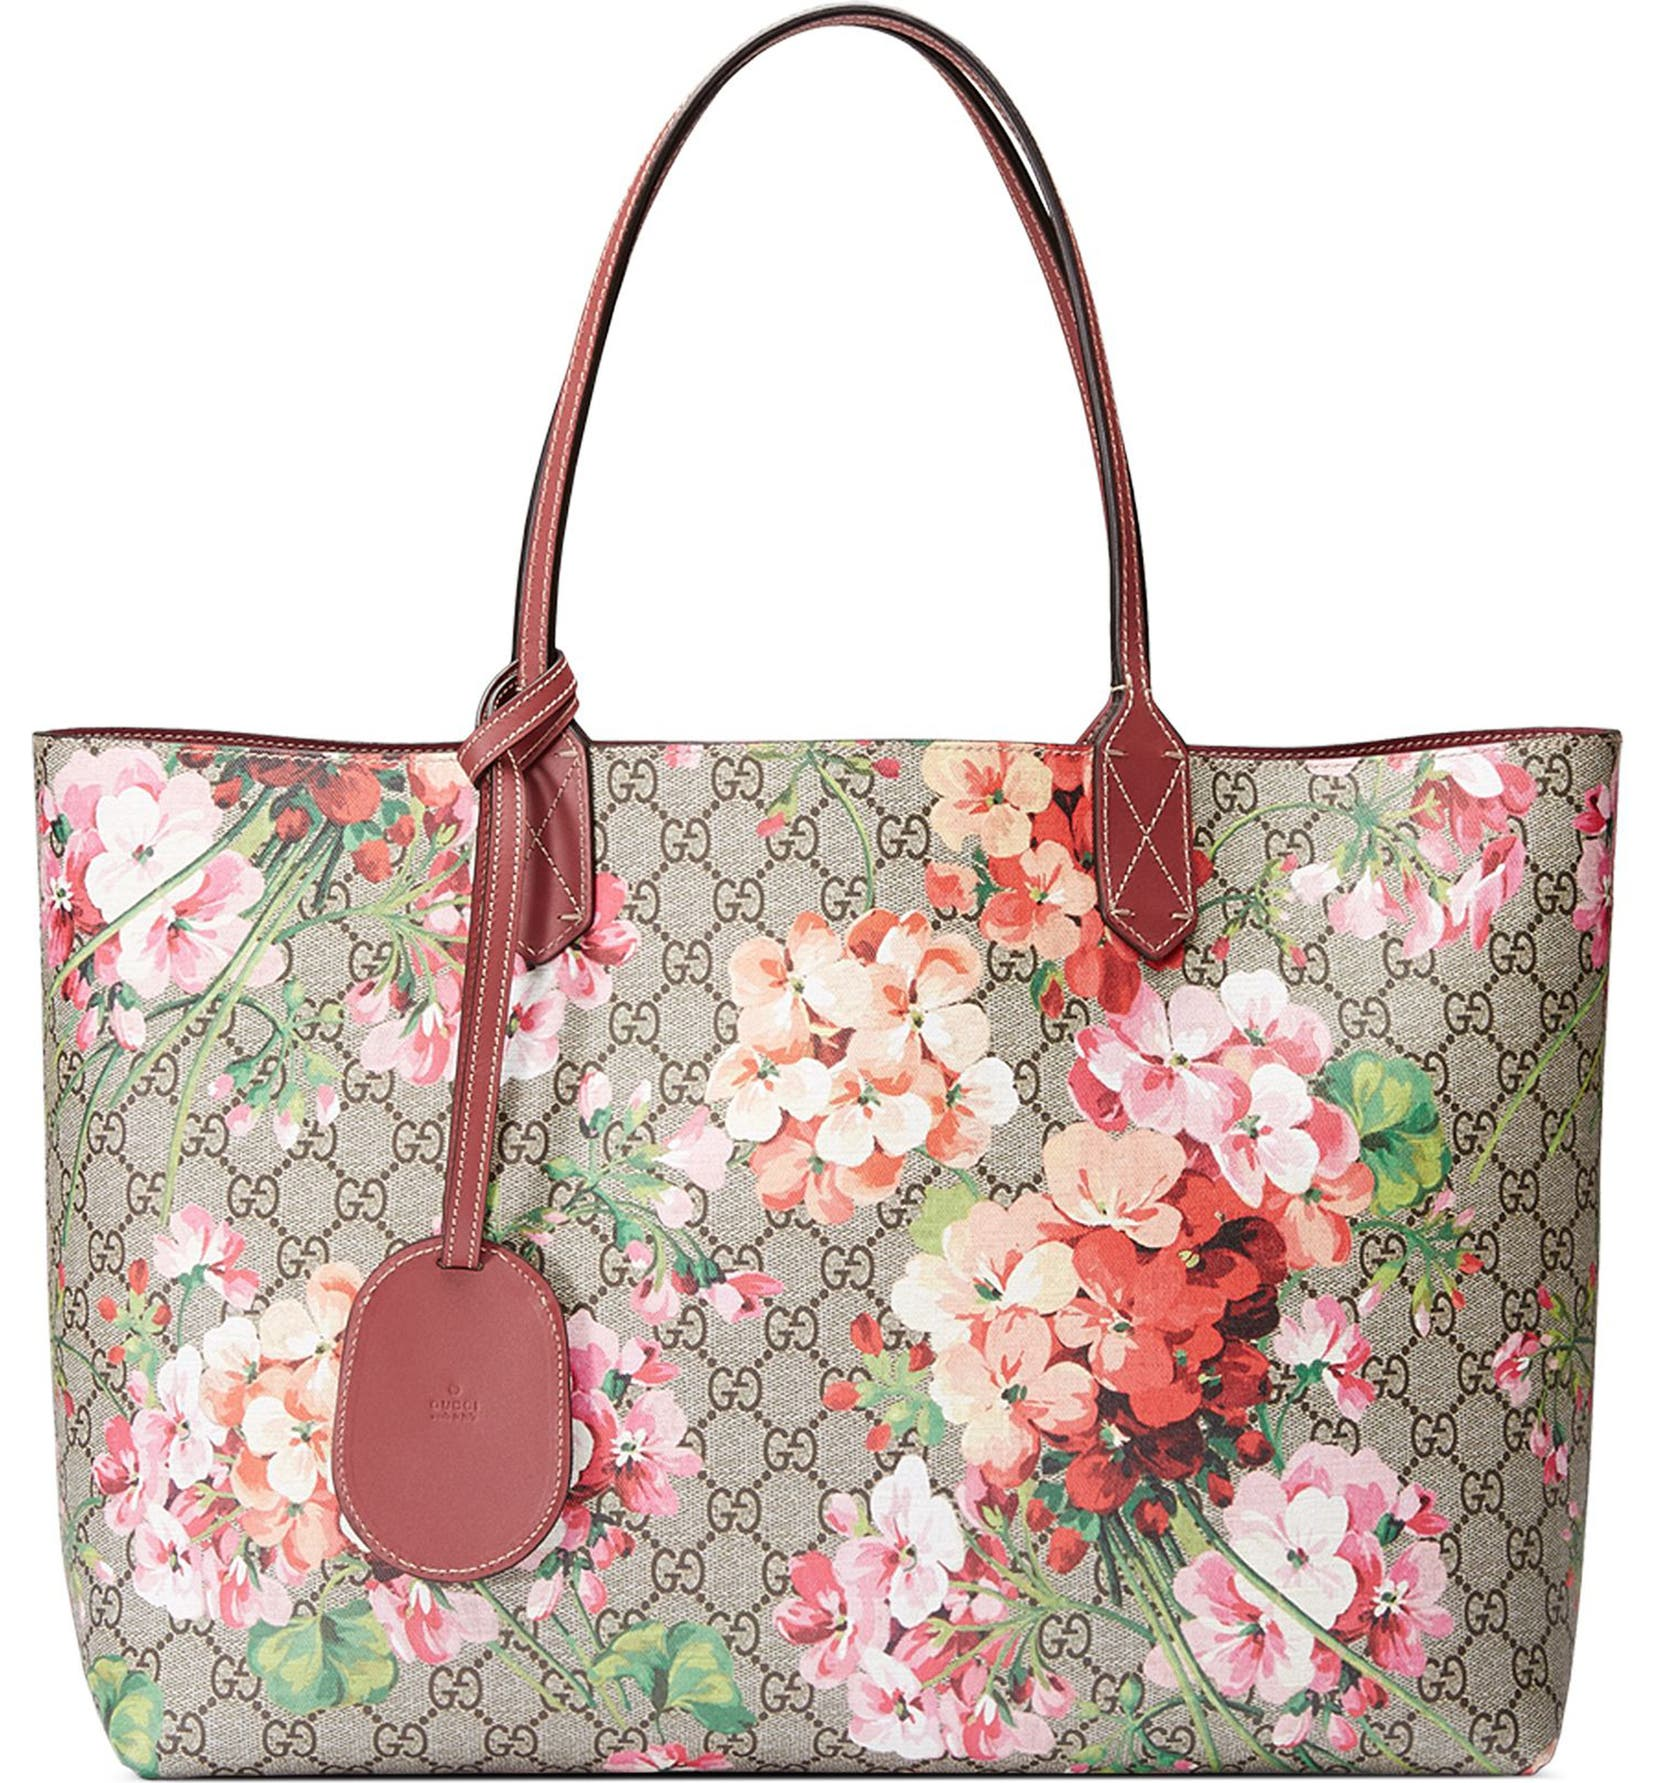 04375d3b6e7 Gucci Medium GG Blooms Reversible Canvas   Leather Tote